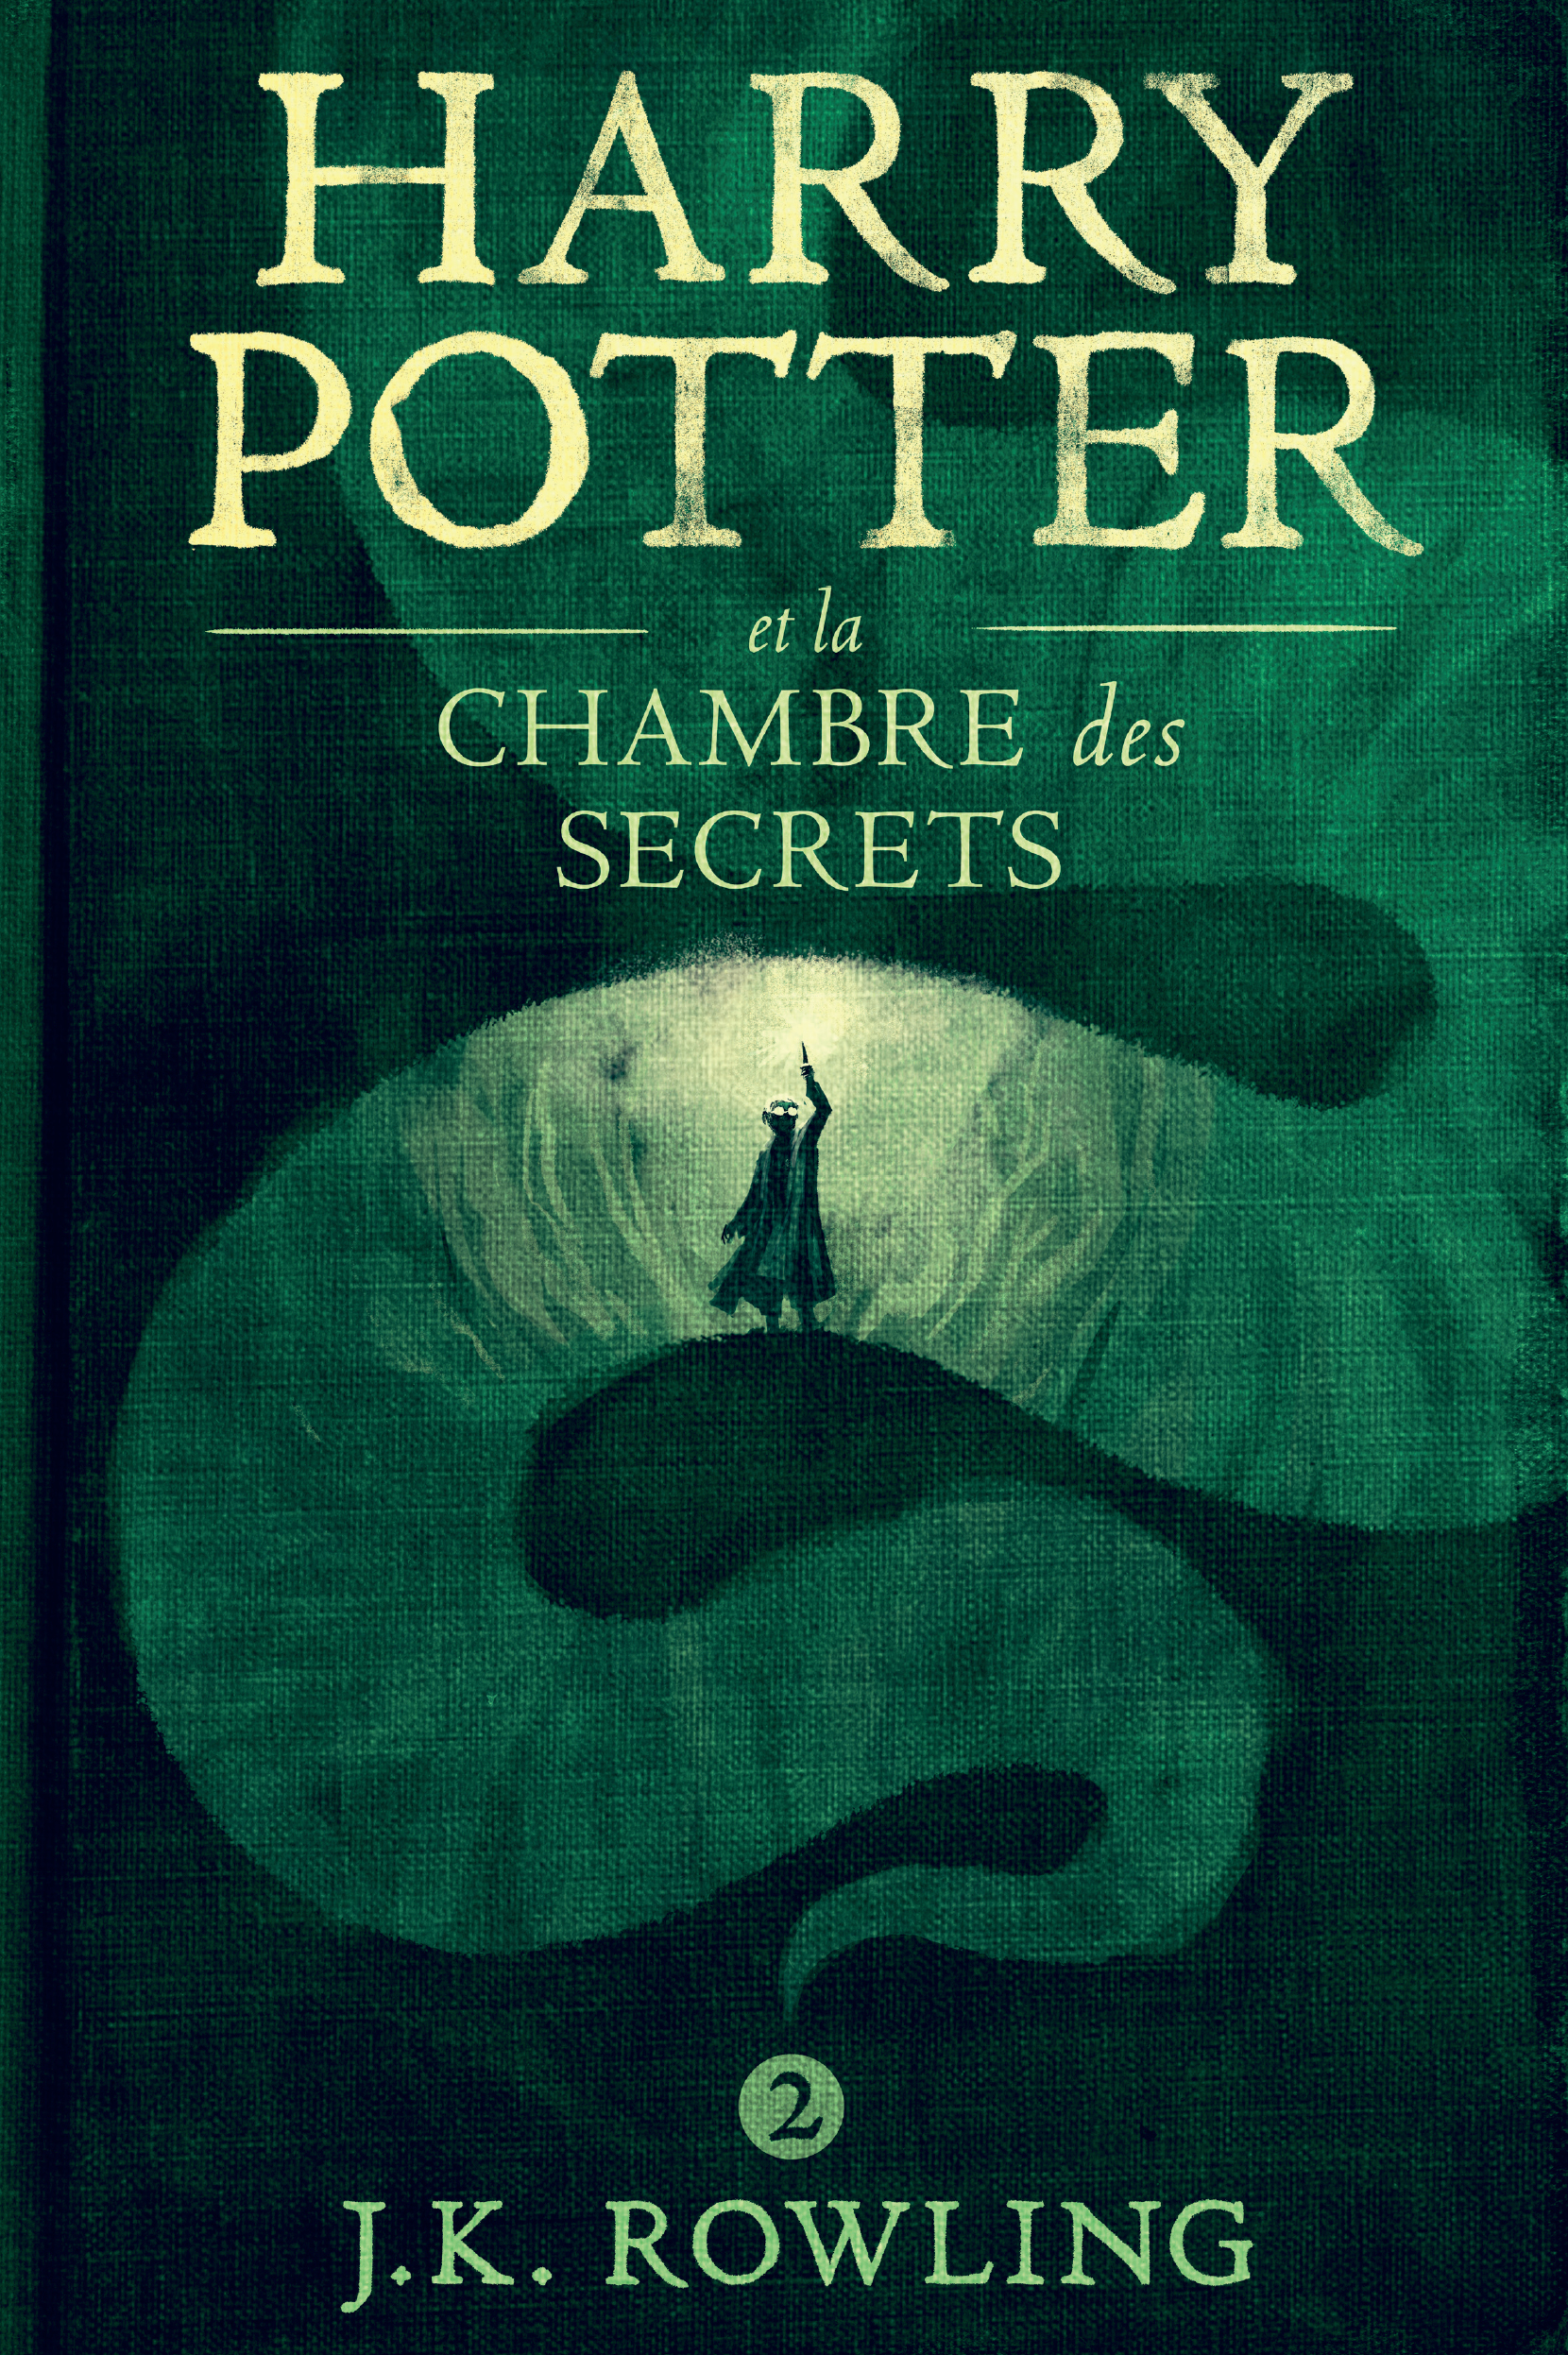 harry potter et la chambre des secrets by j k rowling and